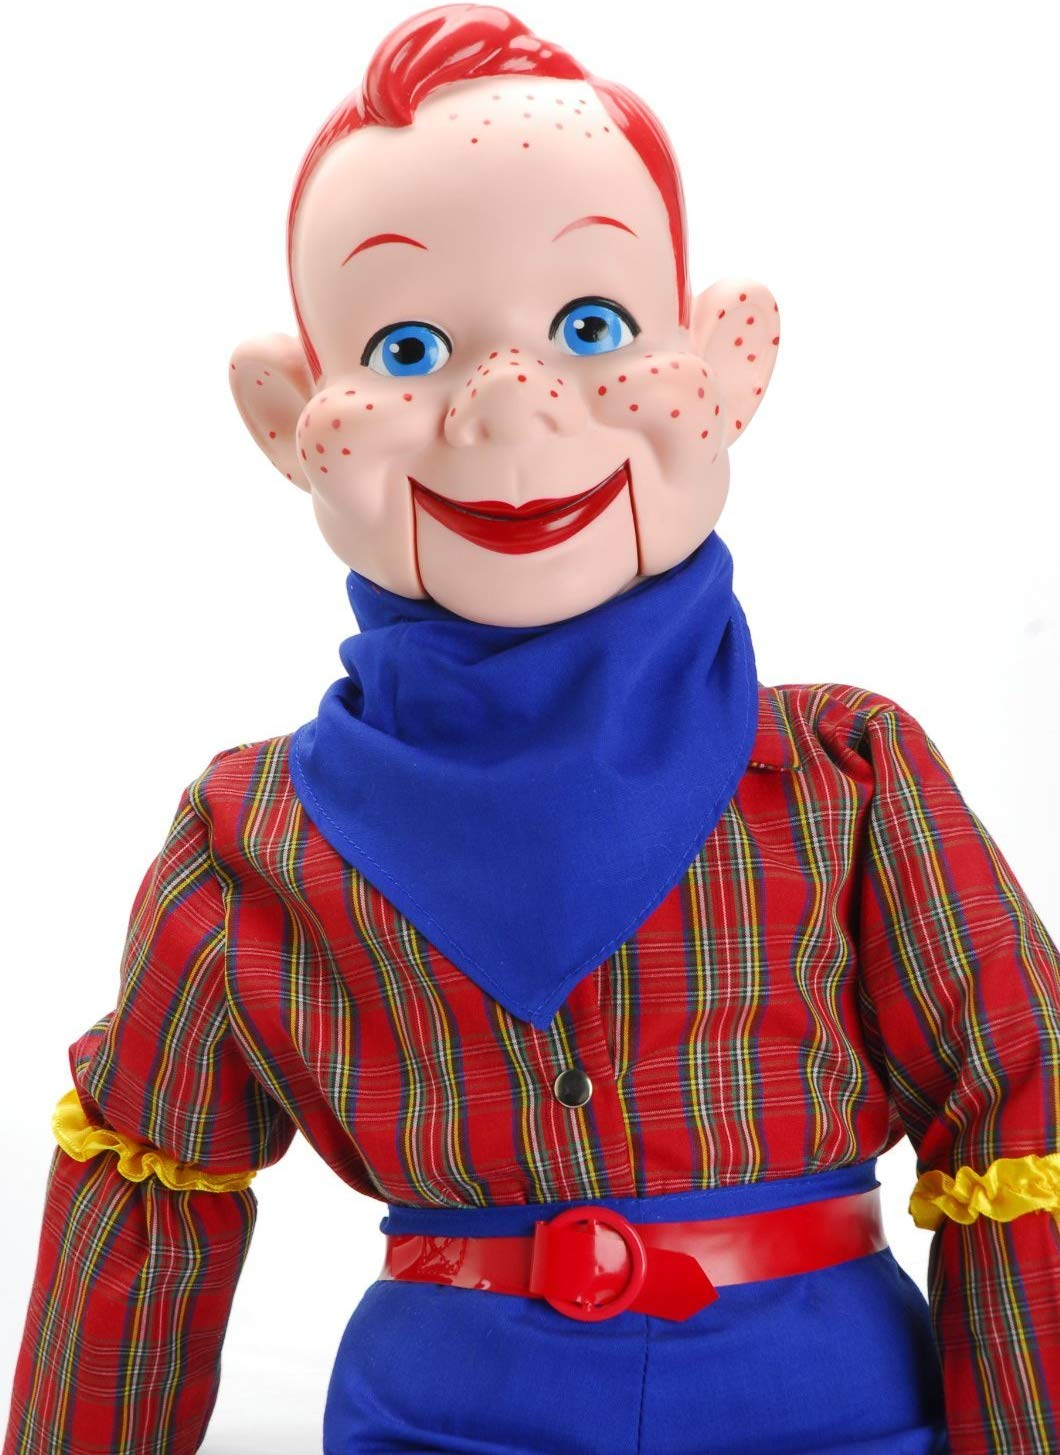 howdy doody dummy ventriloquist doll of